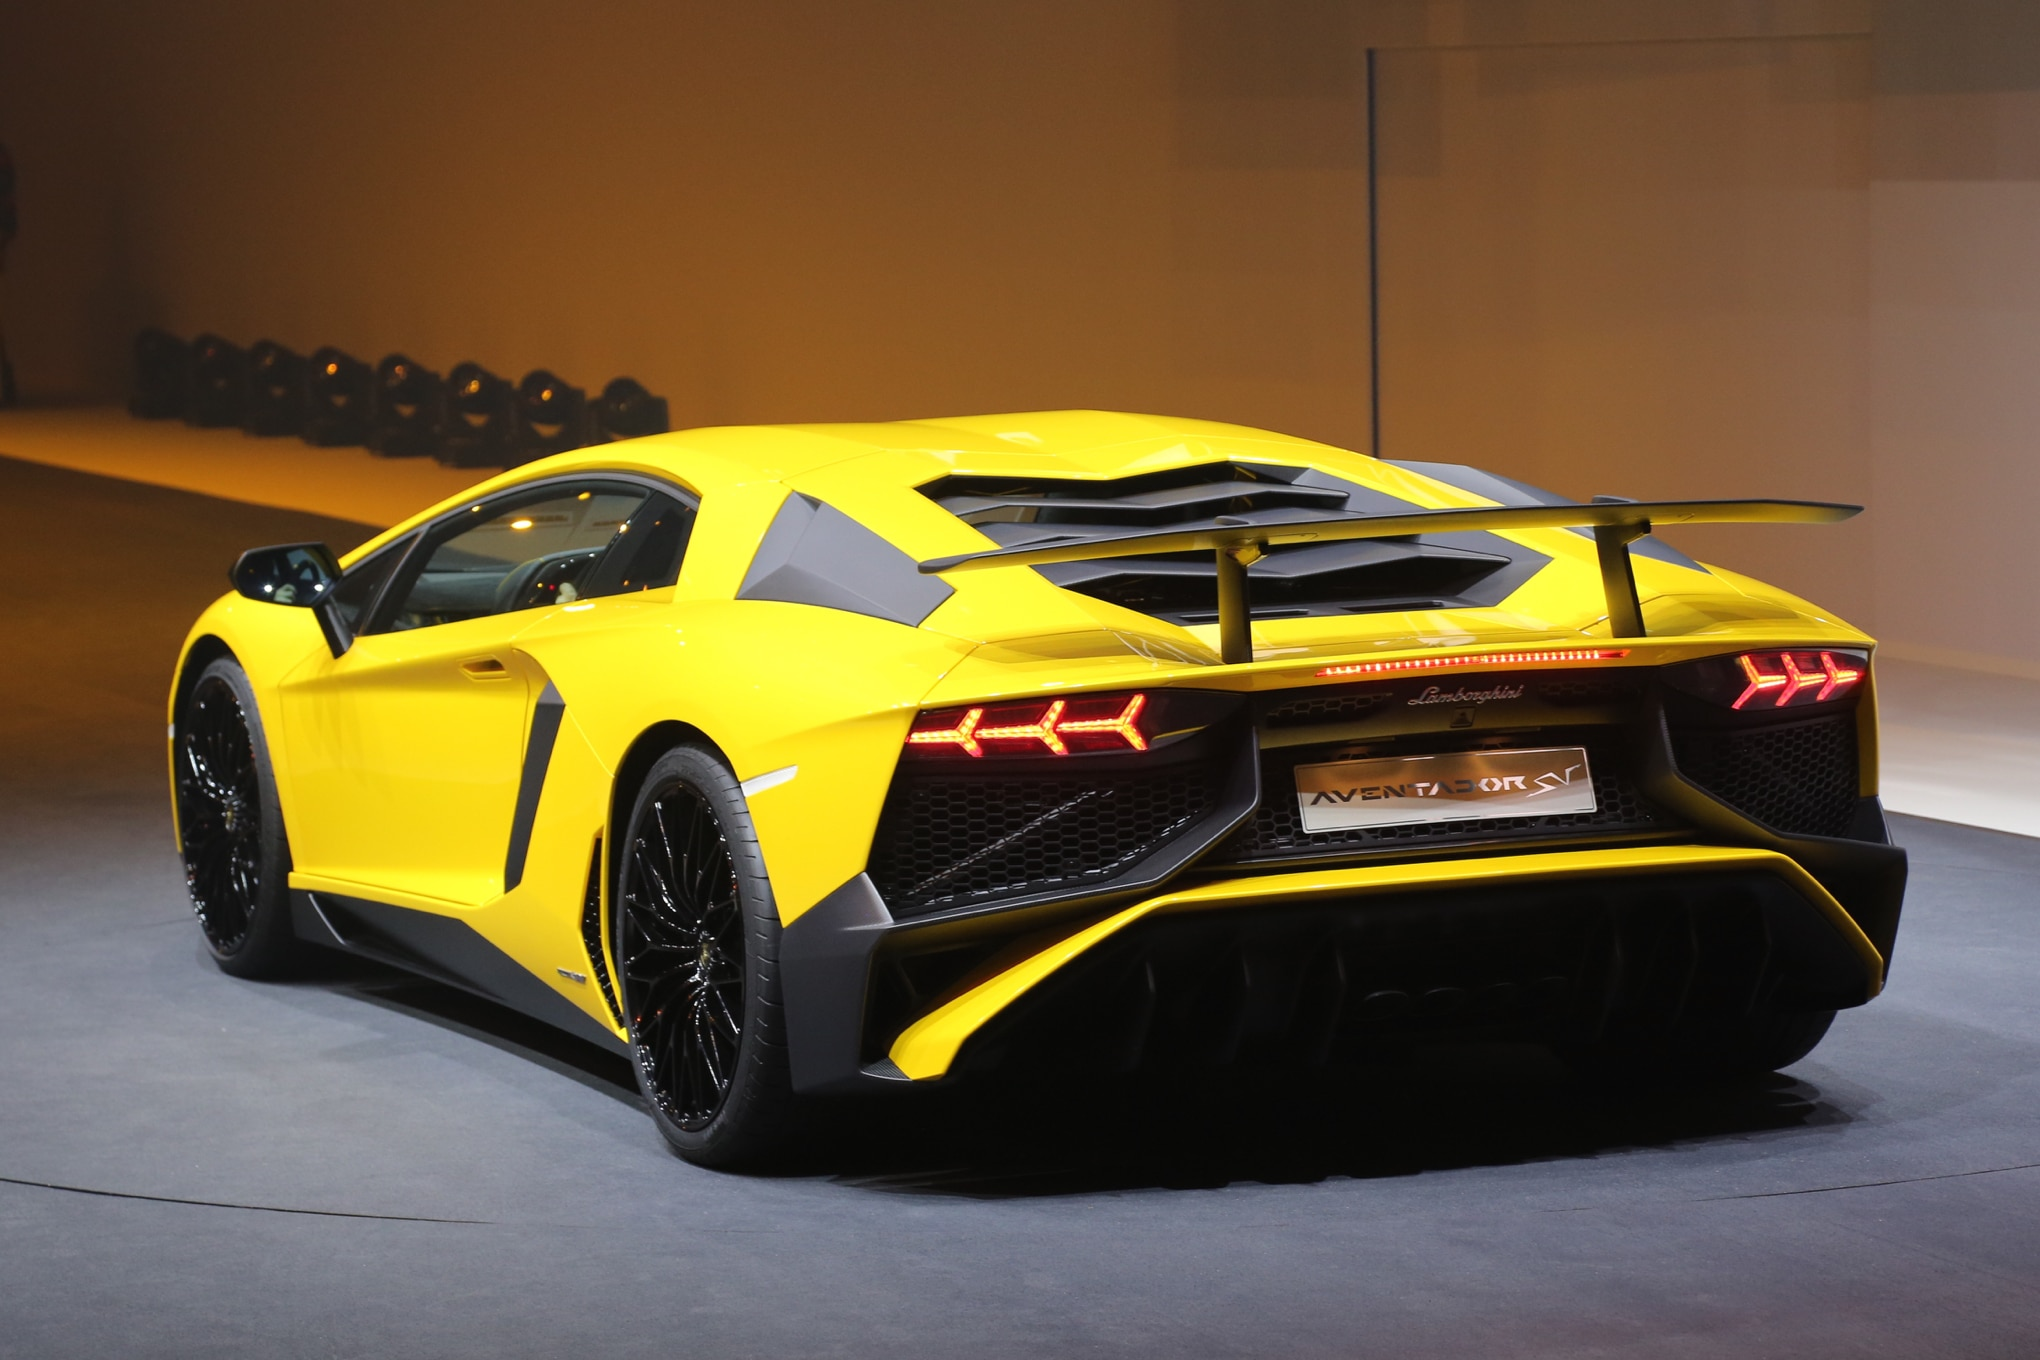 Lamborghini Aventador Lp750 4 >> Lamborghini Aventador LP750-4 SV Debuts with 740 HP